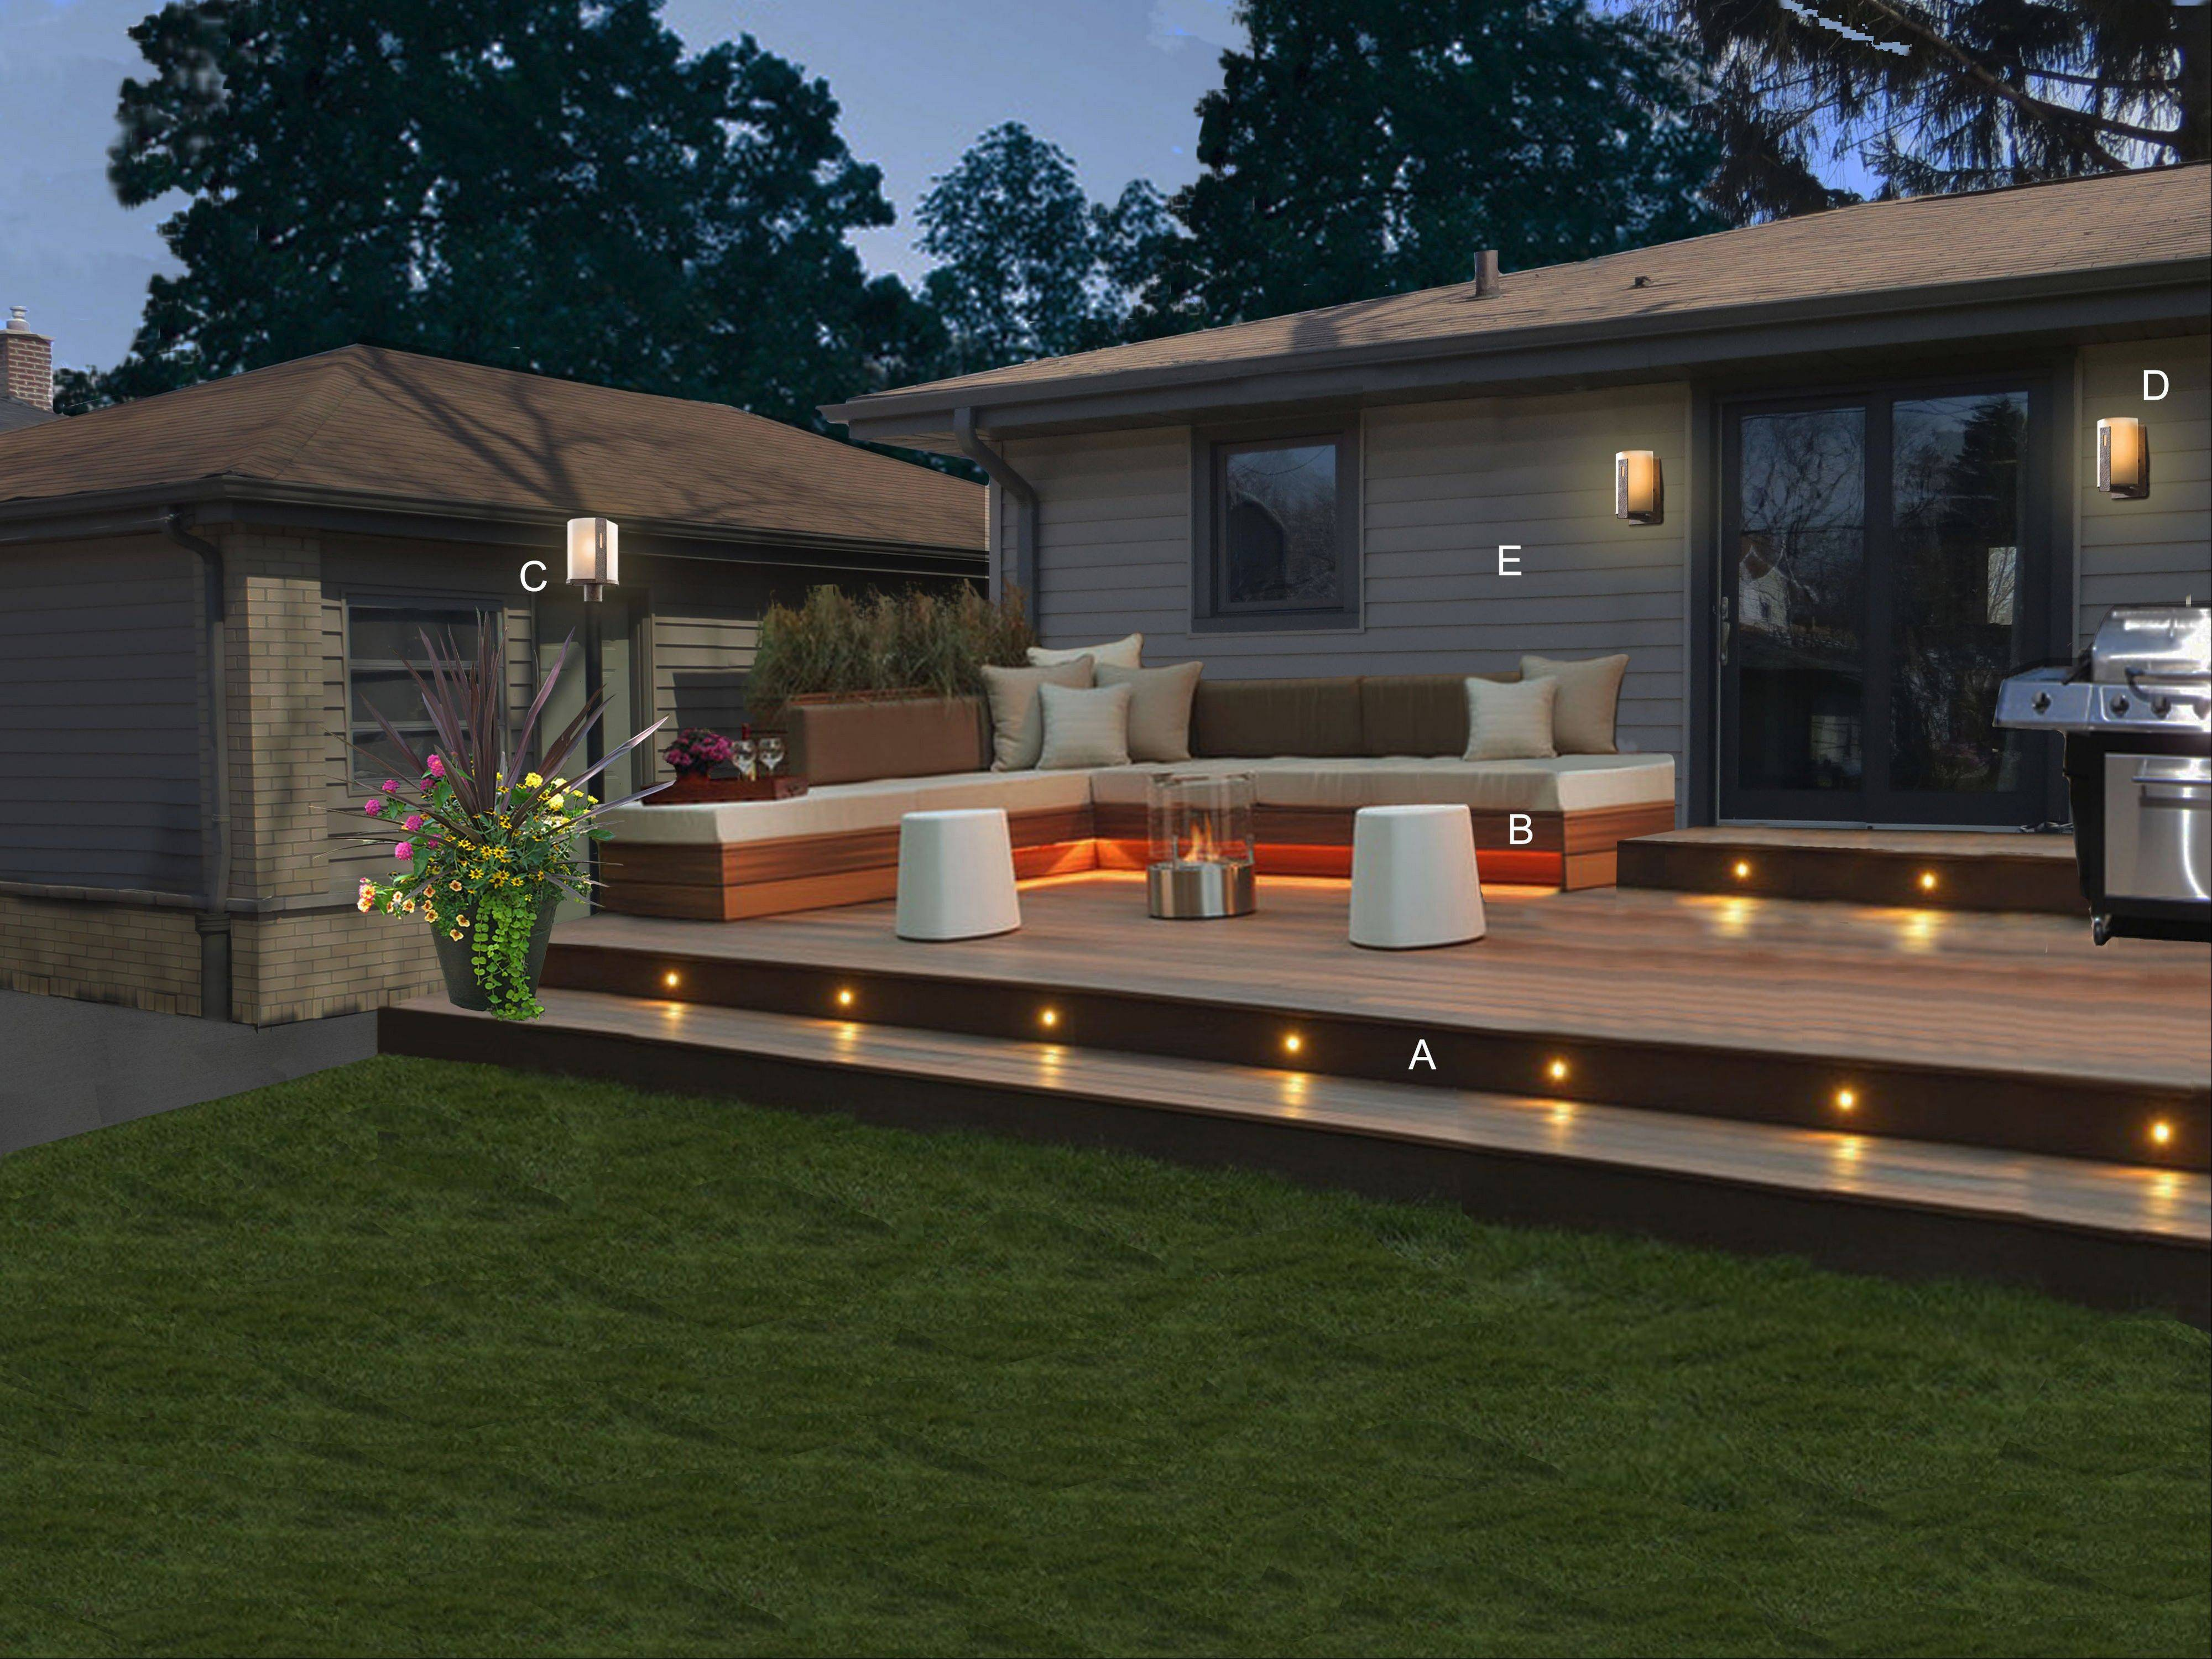 LED lighting gives the homeowner a safe way to enjoy the backyard at night.